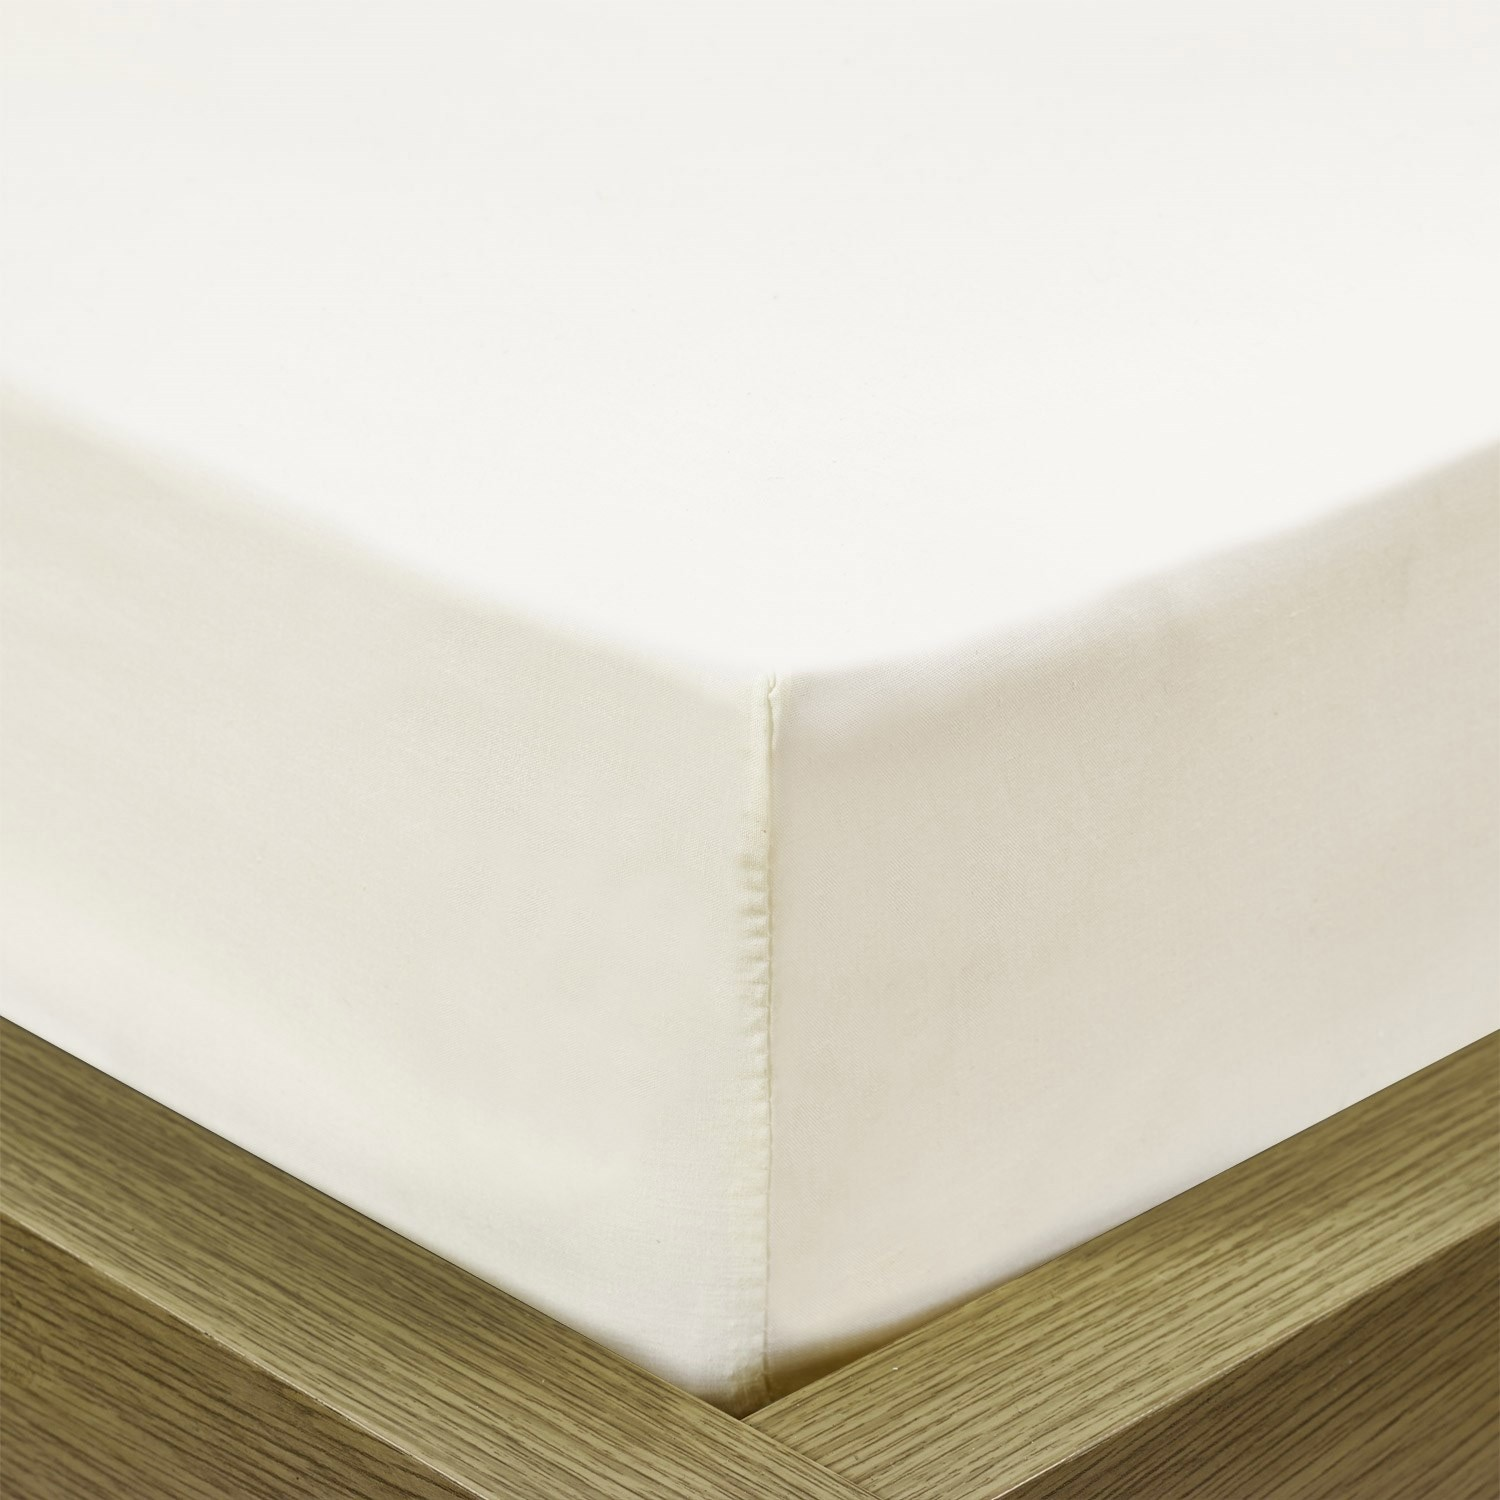 Egyptian Cotton Sheets | Egyptian Cotton Thread Count | Egyptian Cotton Sateen Sheets